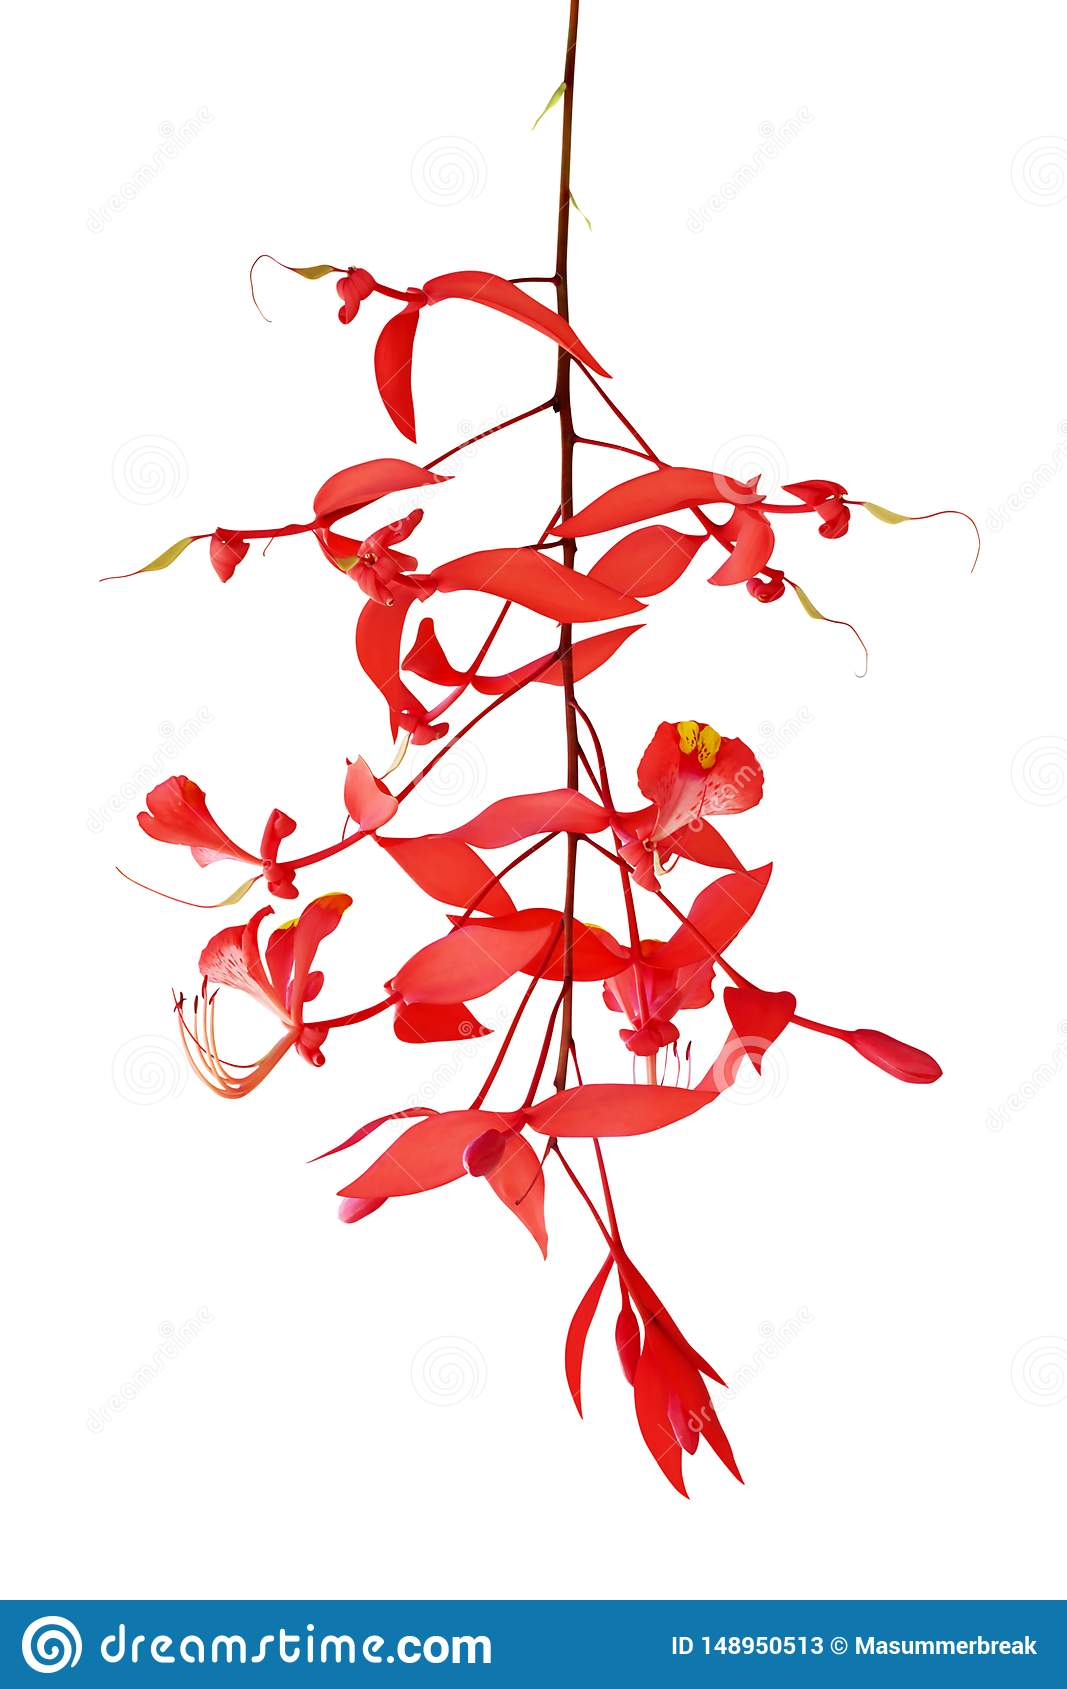 Red Flowers of Amherstia nobilis Wall, Pride of Burma Isolated on White Background